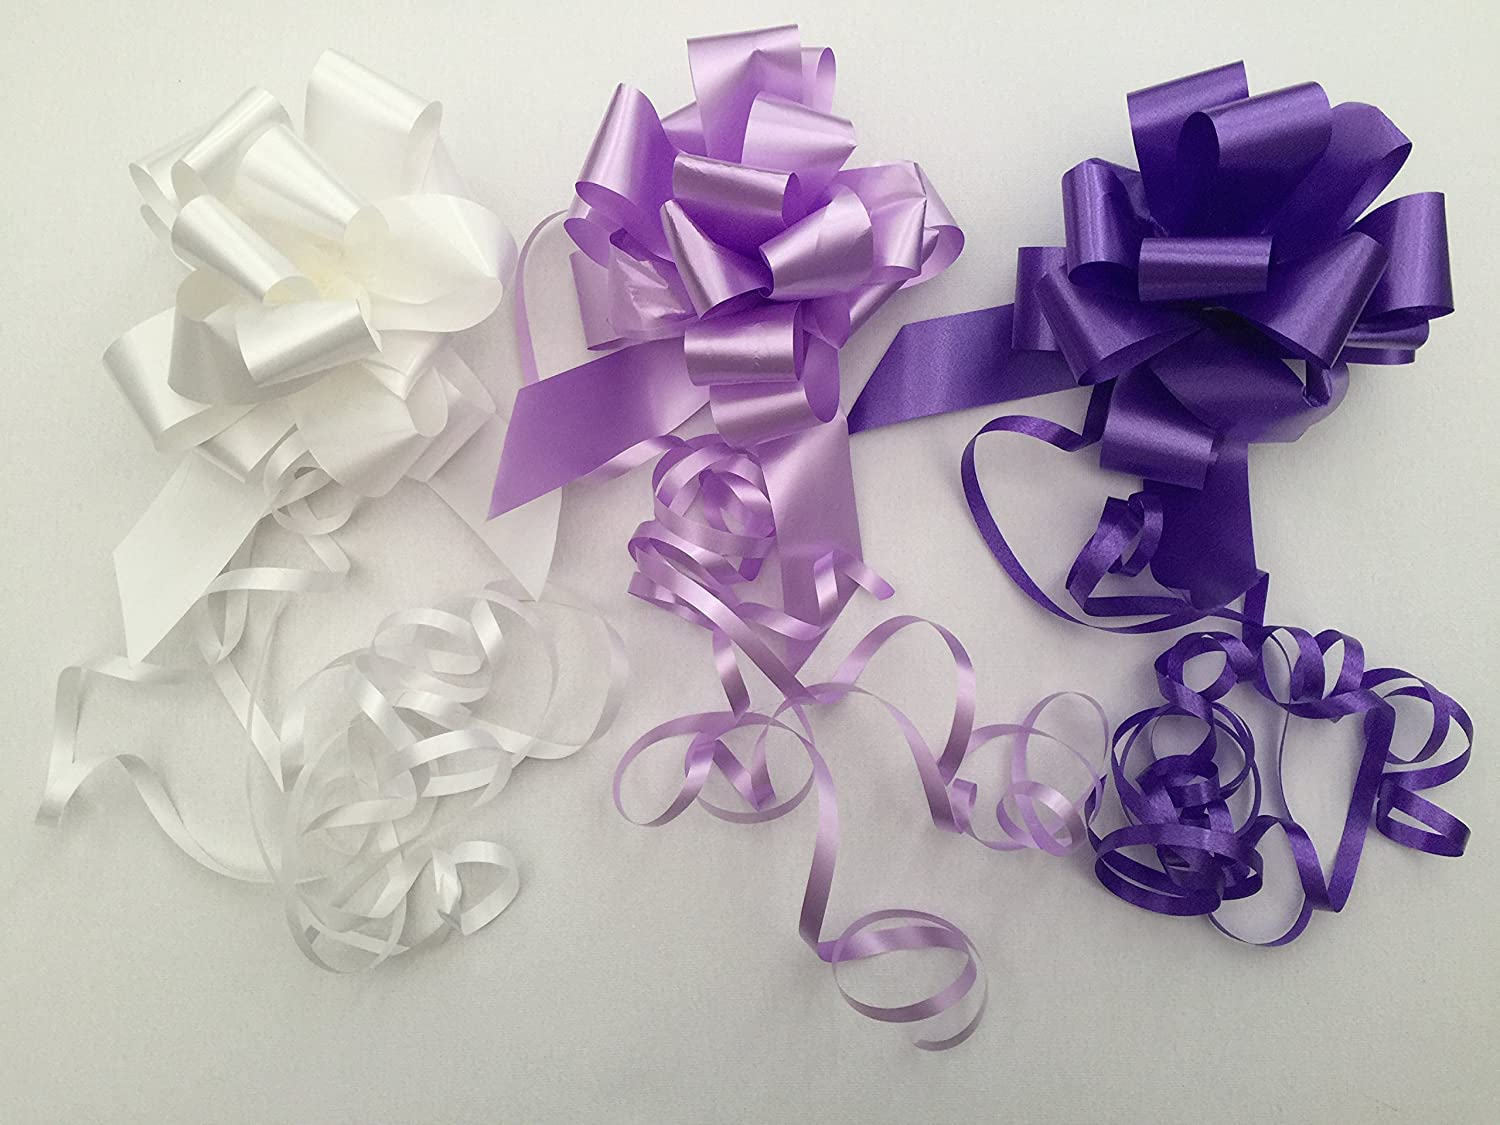 31mm Pull Bow Pack 3. Astic Group Instruction Sheet Packaging - Colours as Picture White,Lilac,Purple (Sent Flat Packed|) DIY-Gift-Baskets